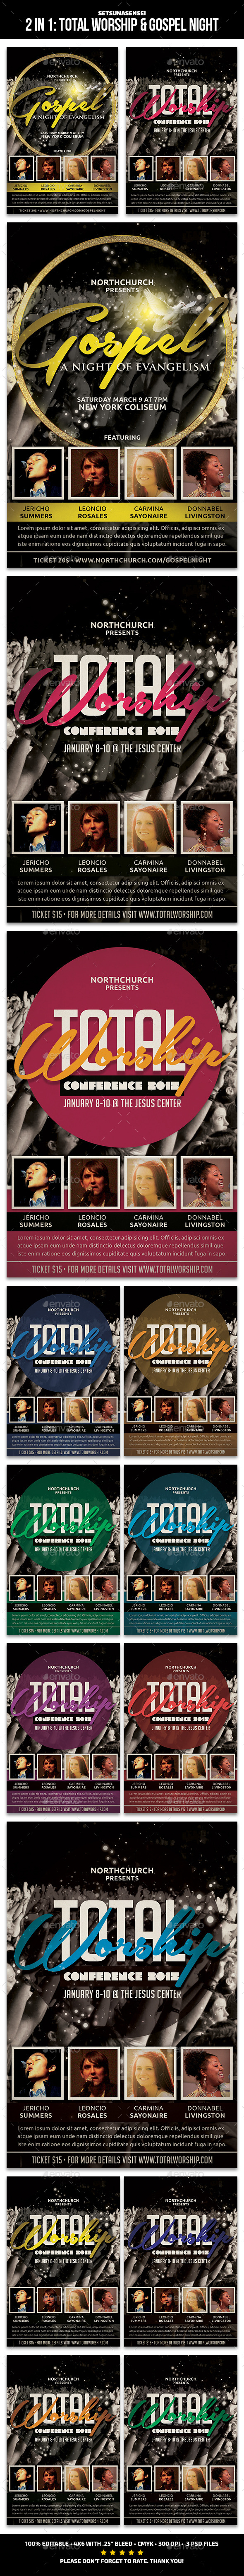 2 in 1 Church Flyer: Total Worship and Gospel Night - Church Flyers